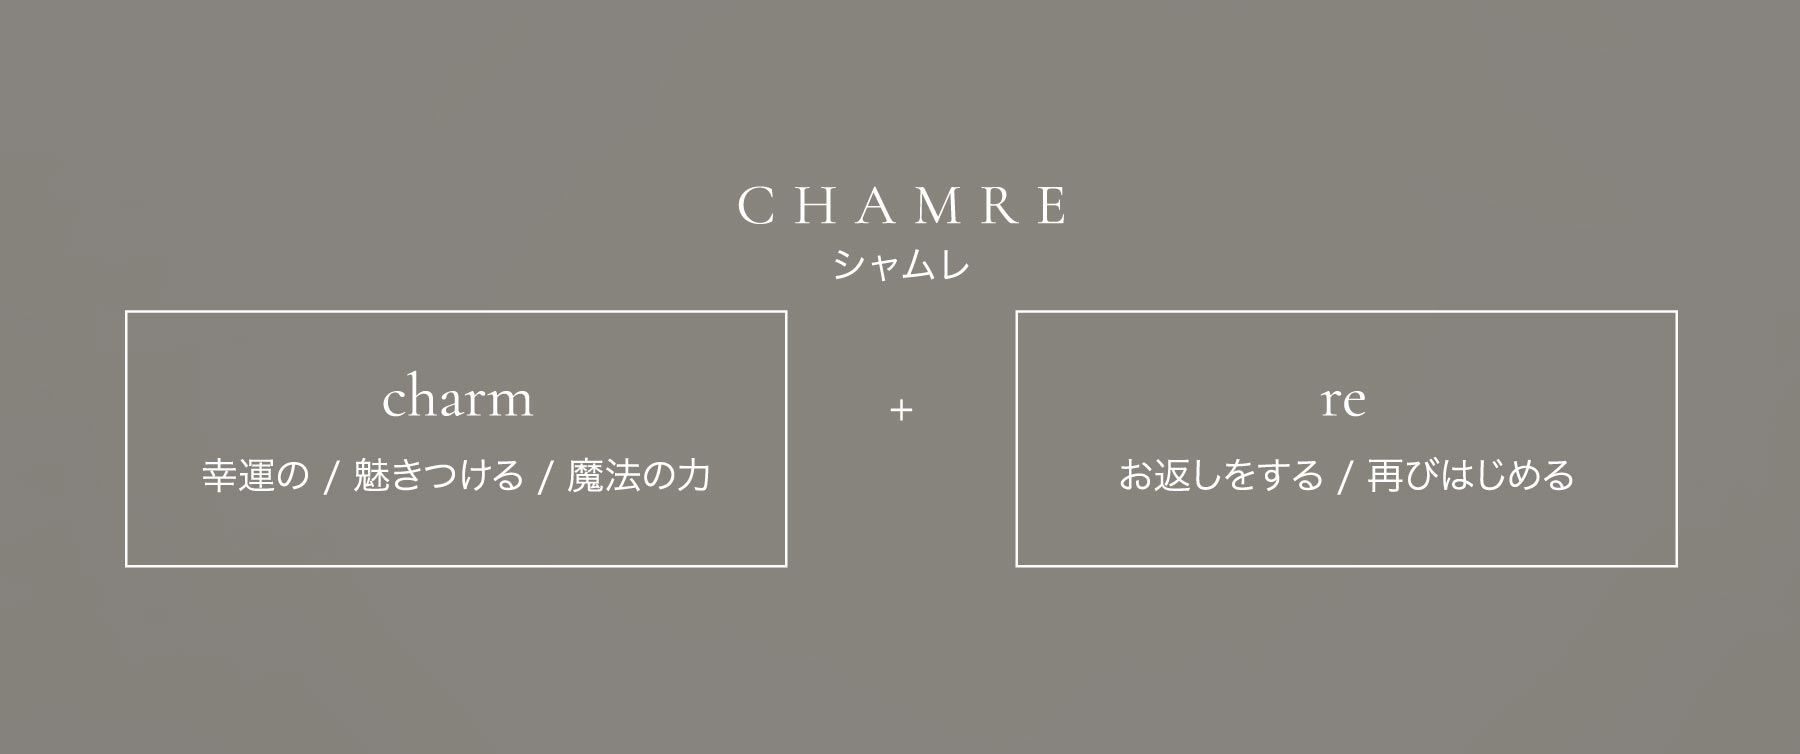 Chamre name concept